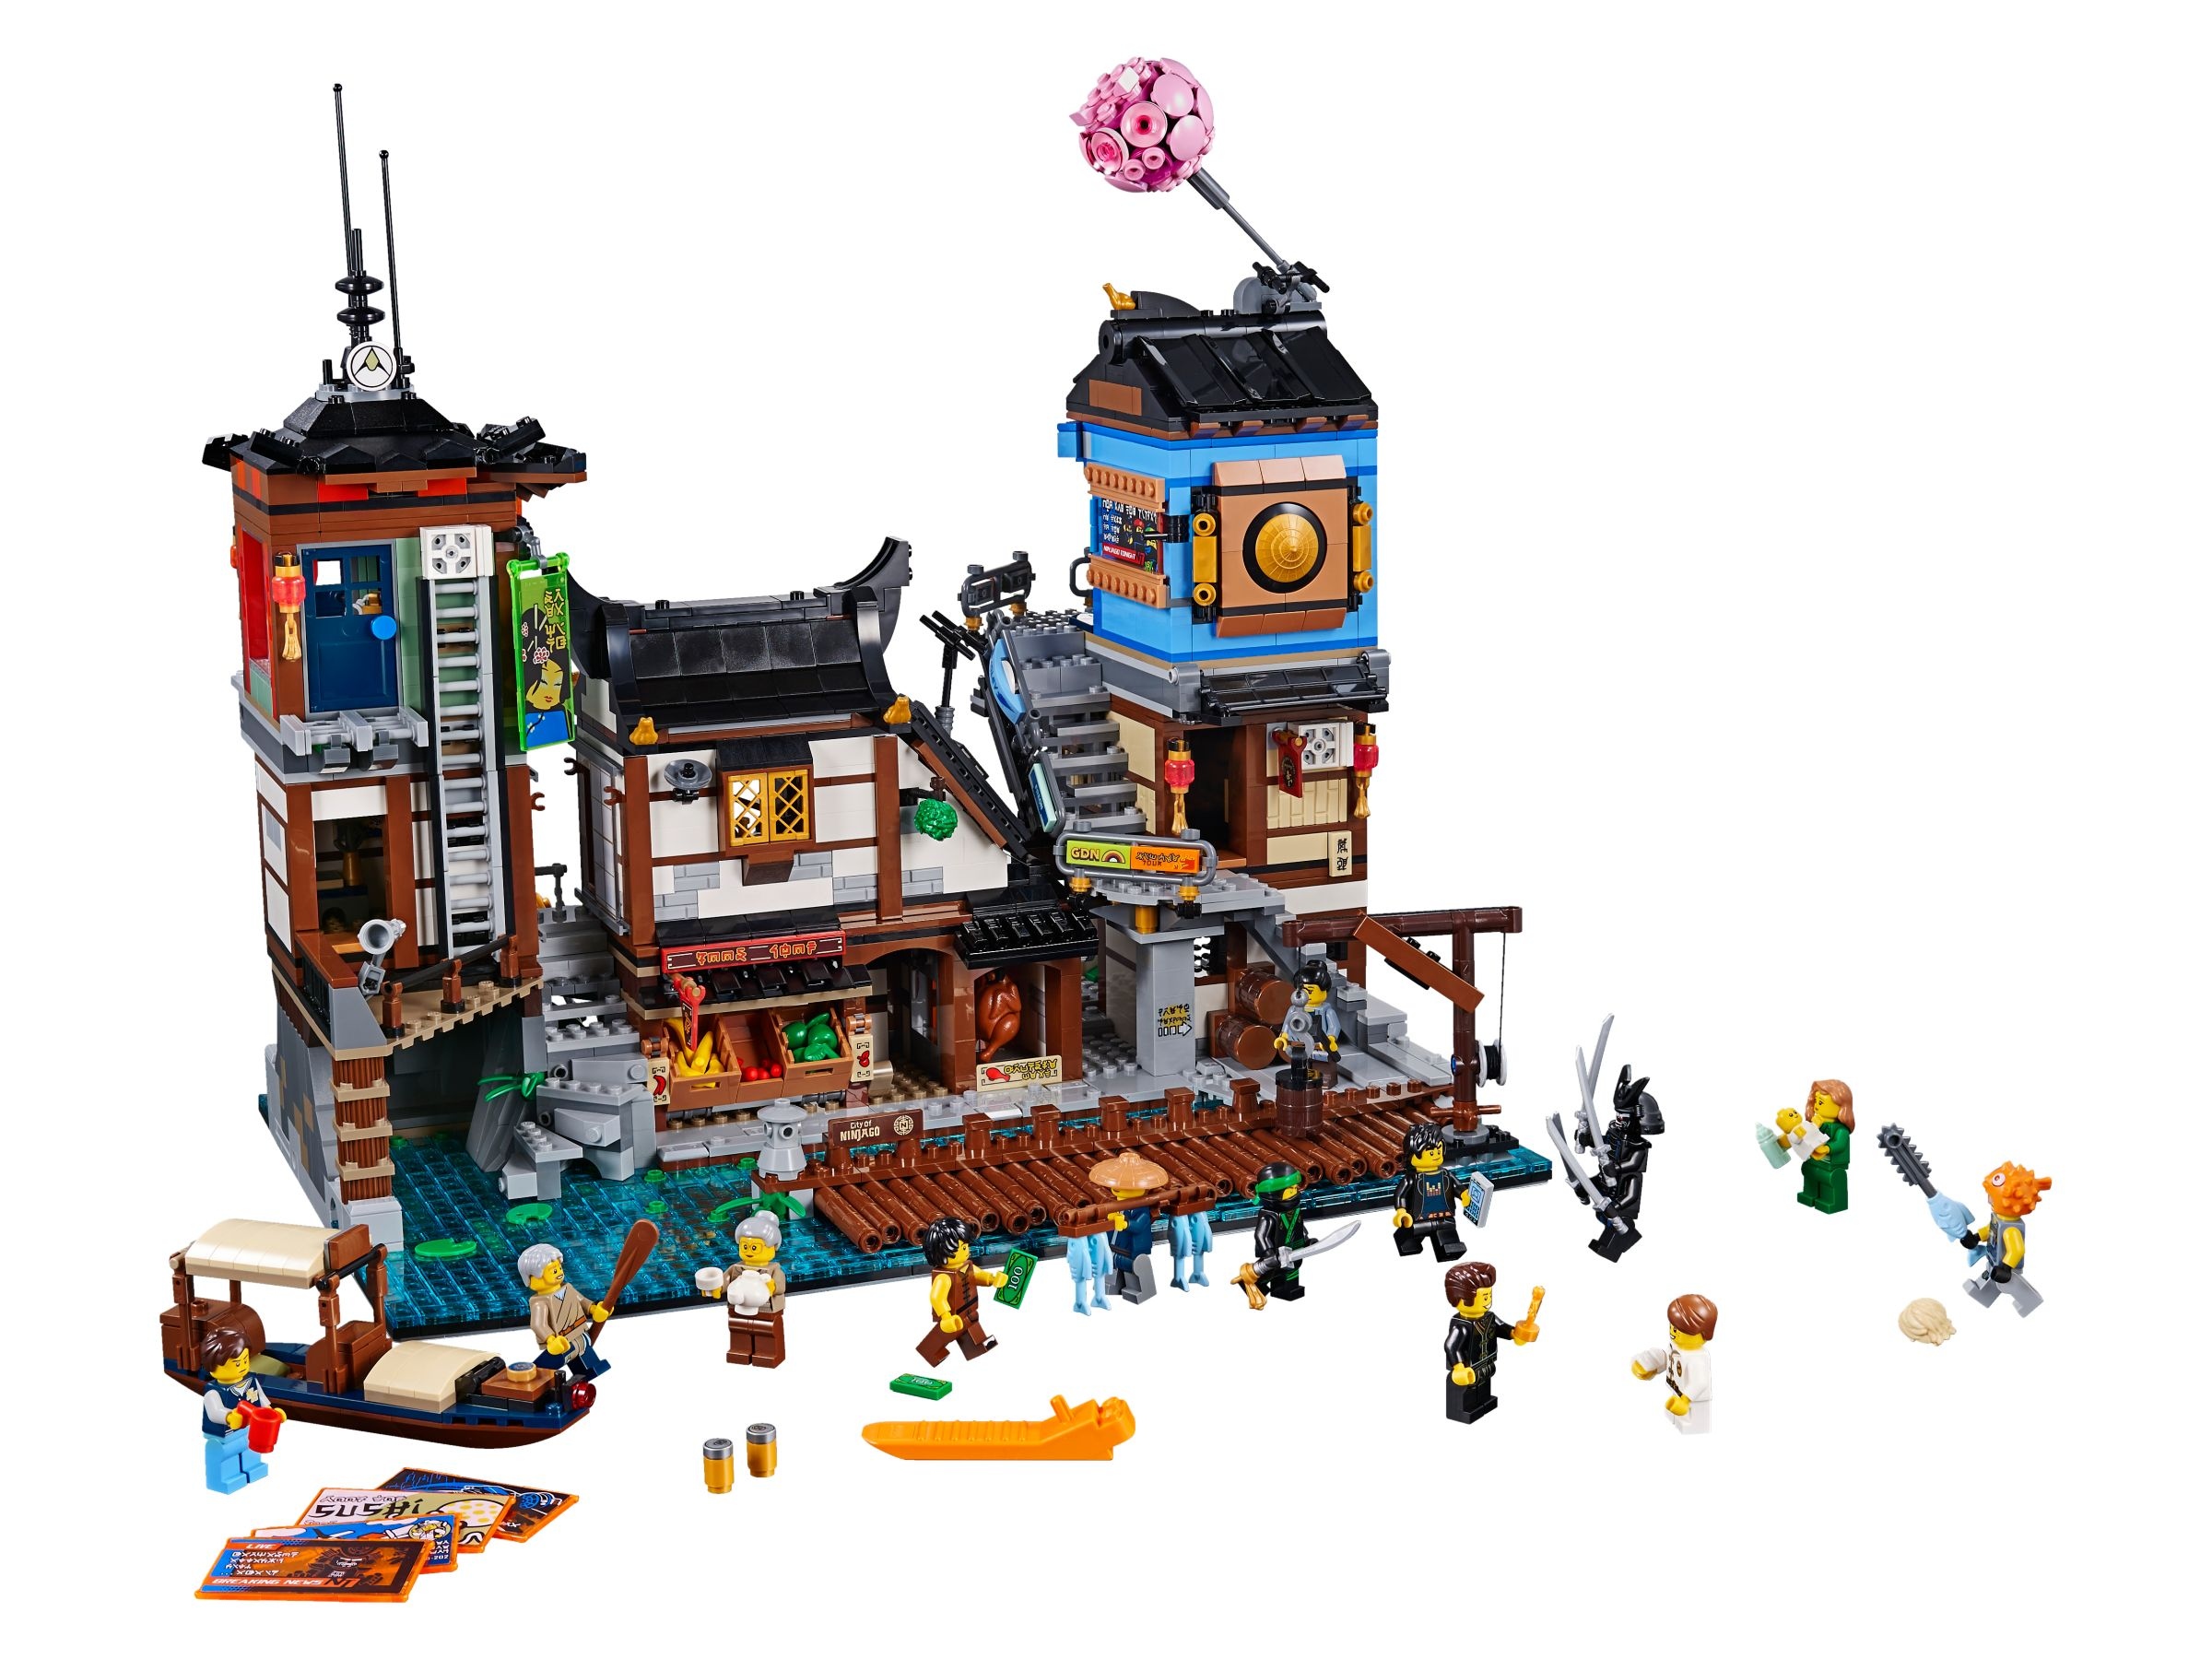 LEGO The LEGO Ninjago Movie 70657 Ninjago City Hafen LEGO_70657.jpg